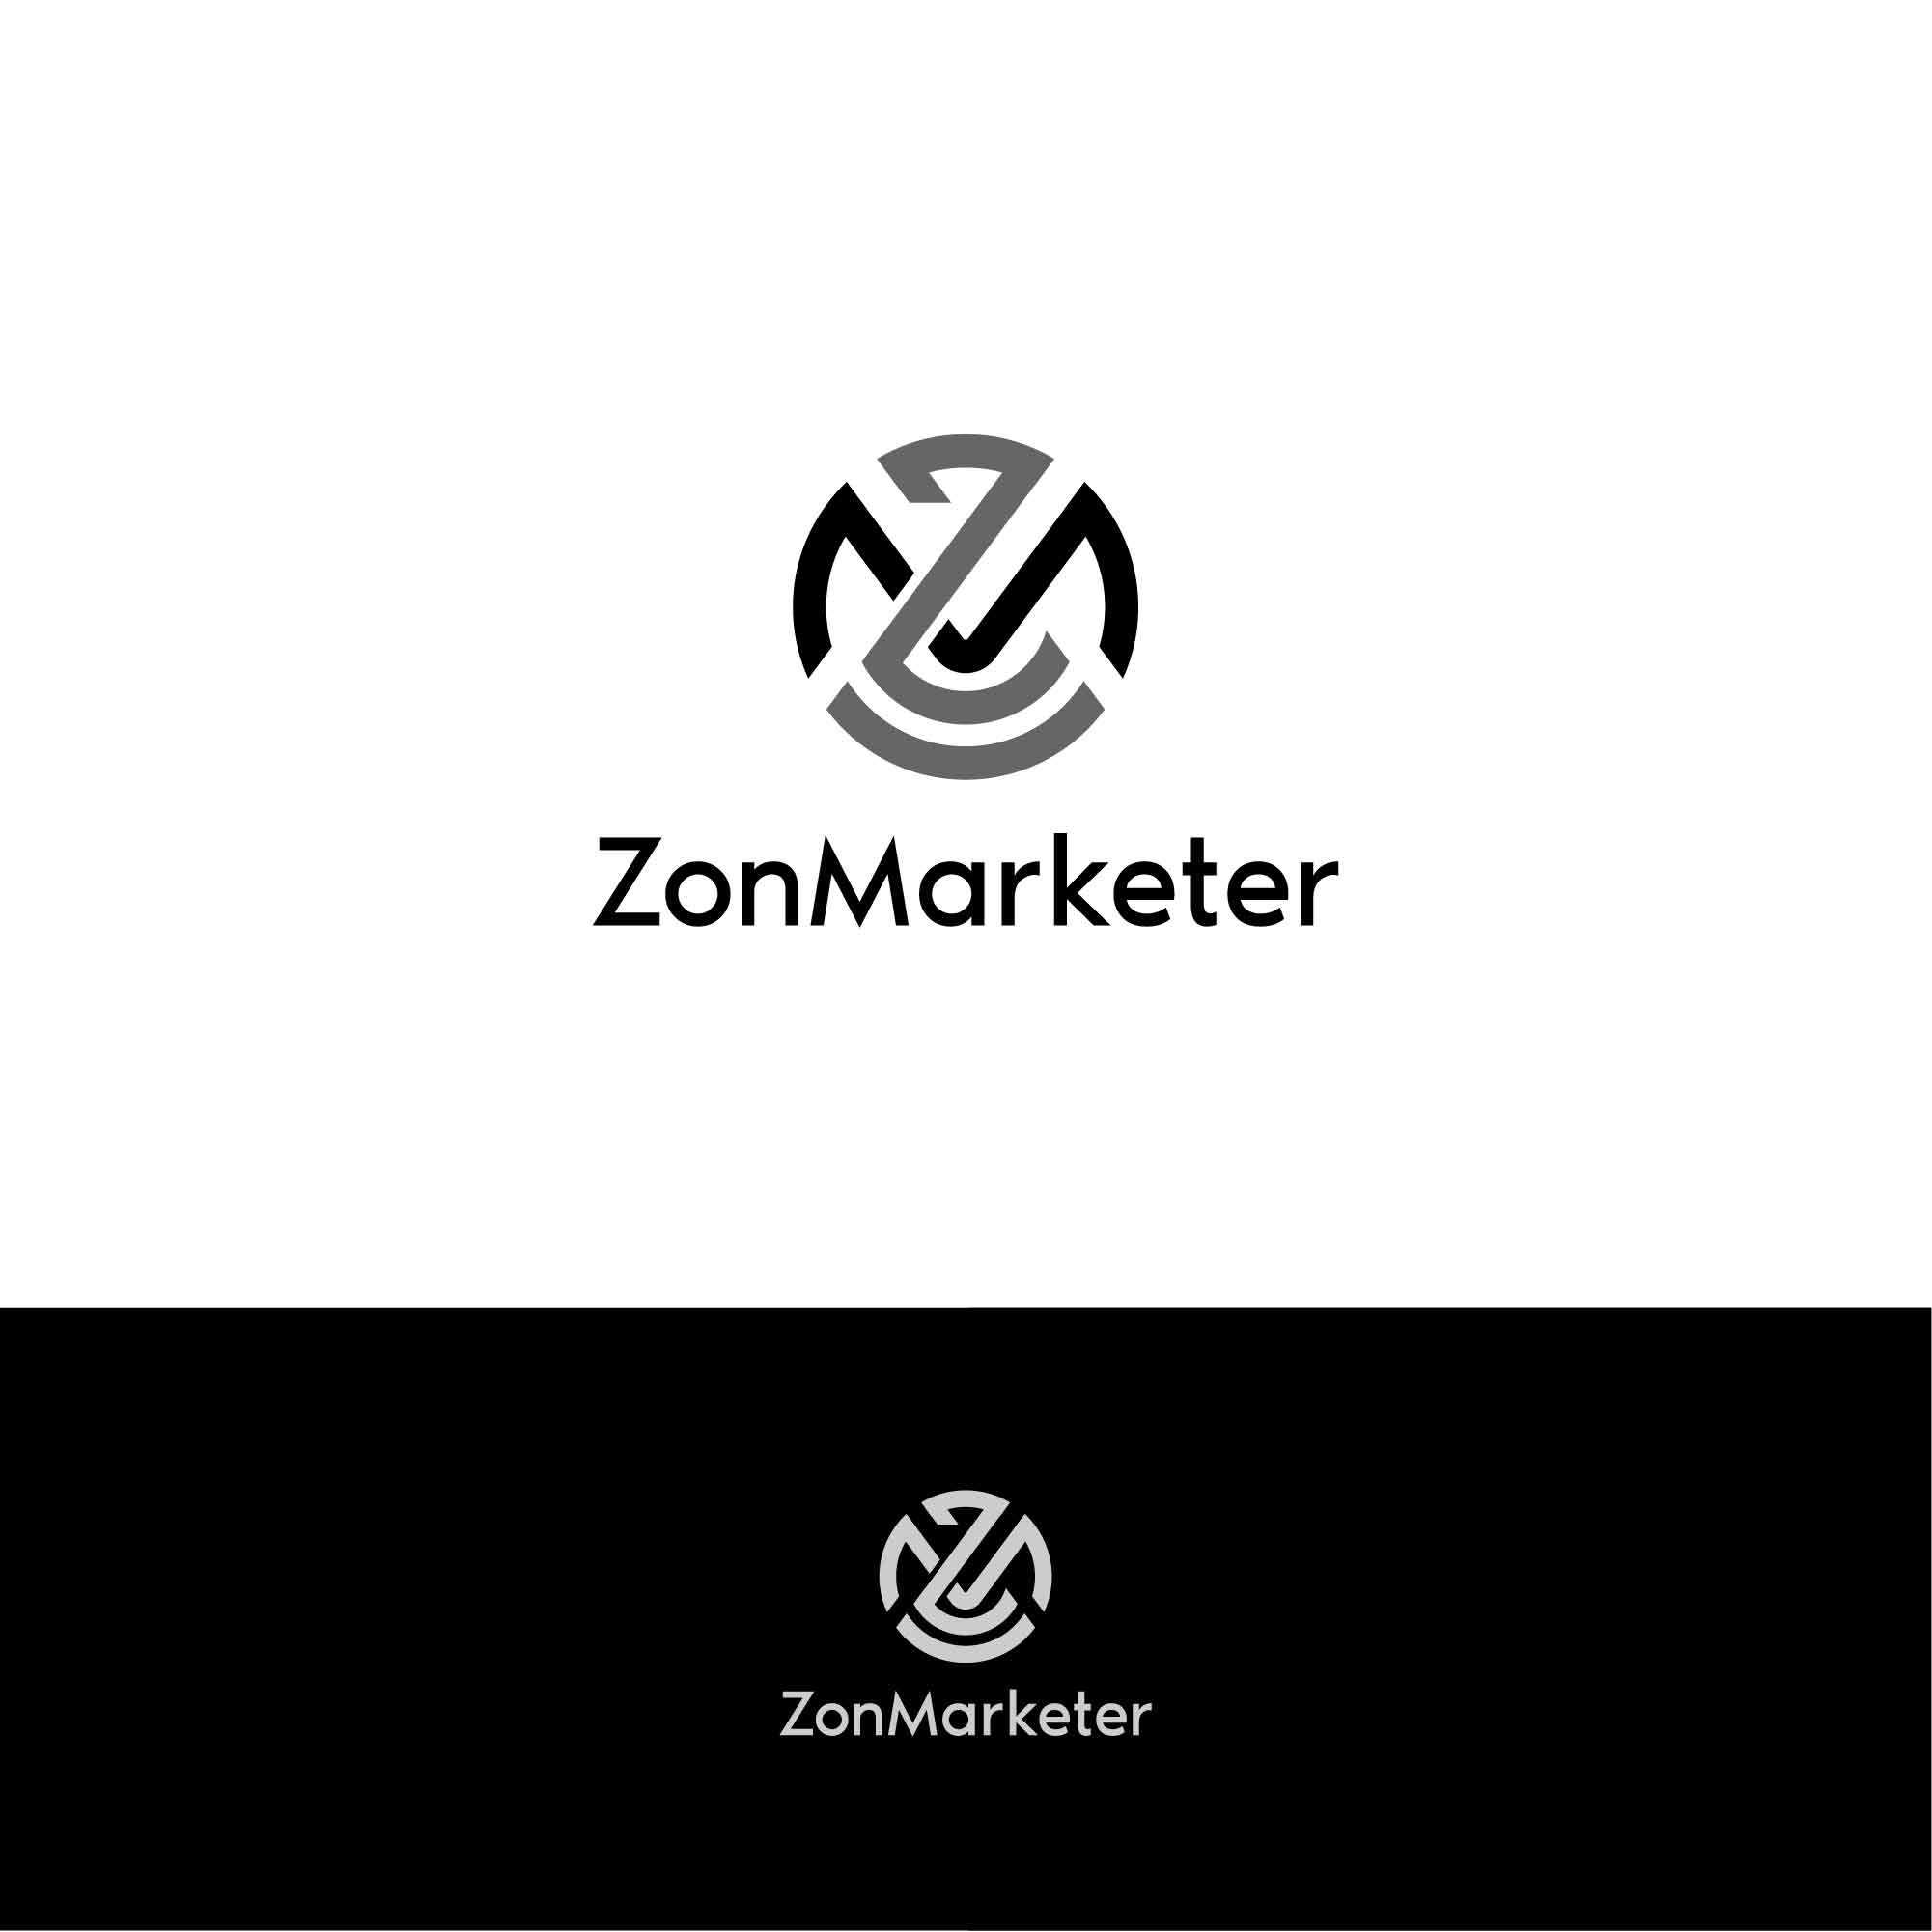 Killer Logo for ZonMarketer a Leading Amazon Services Firm!